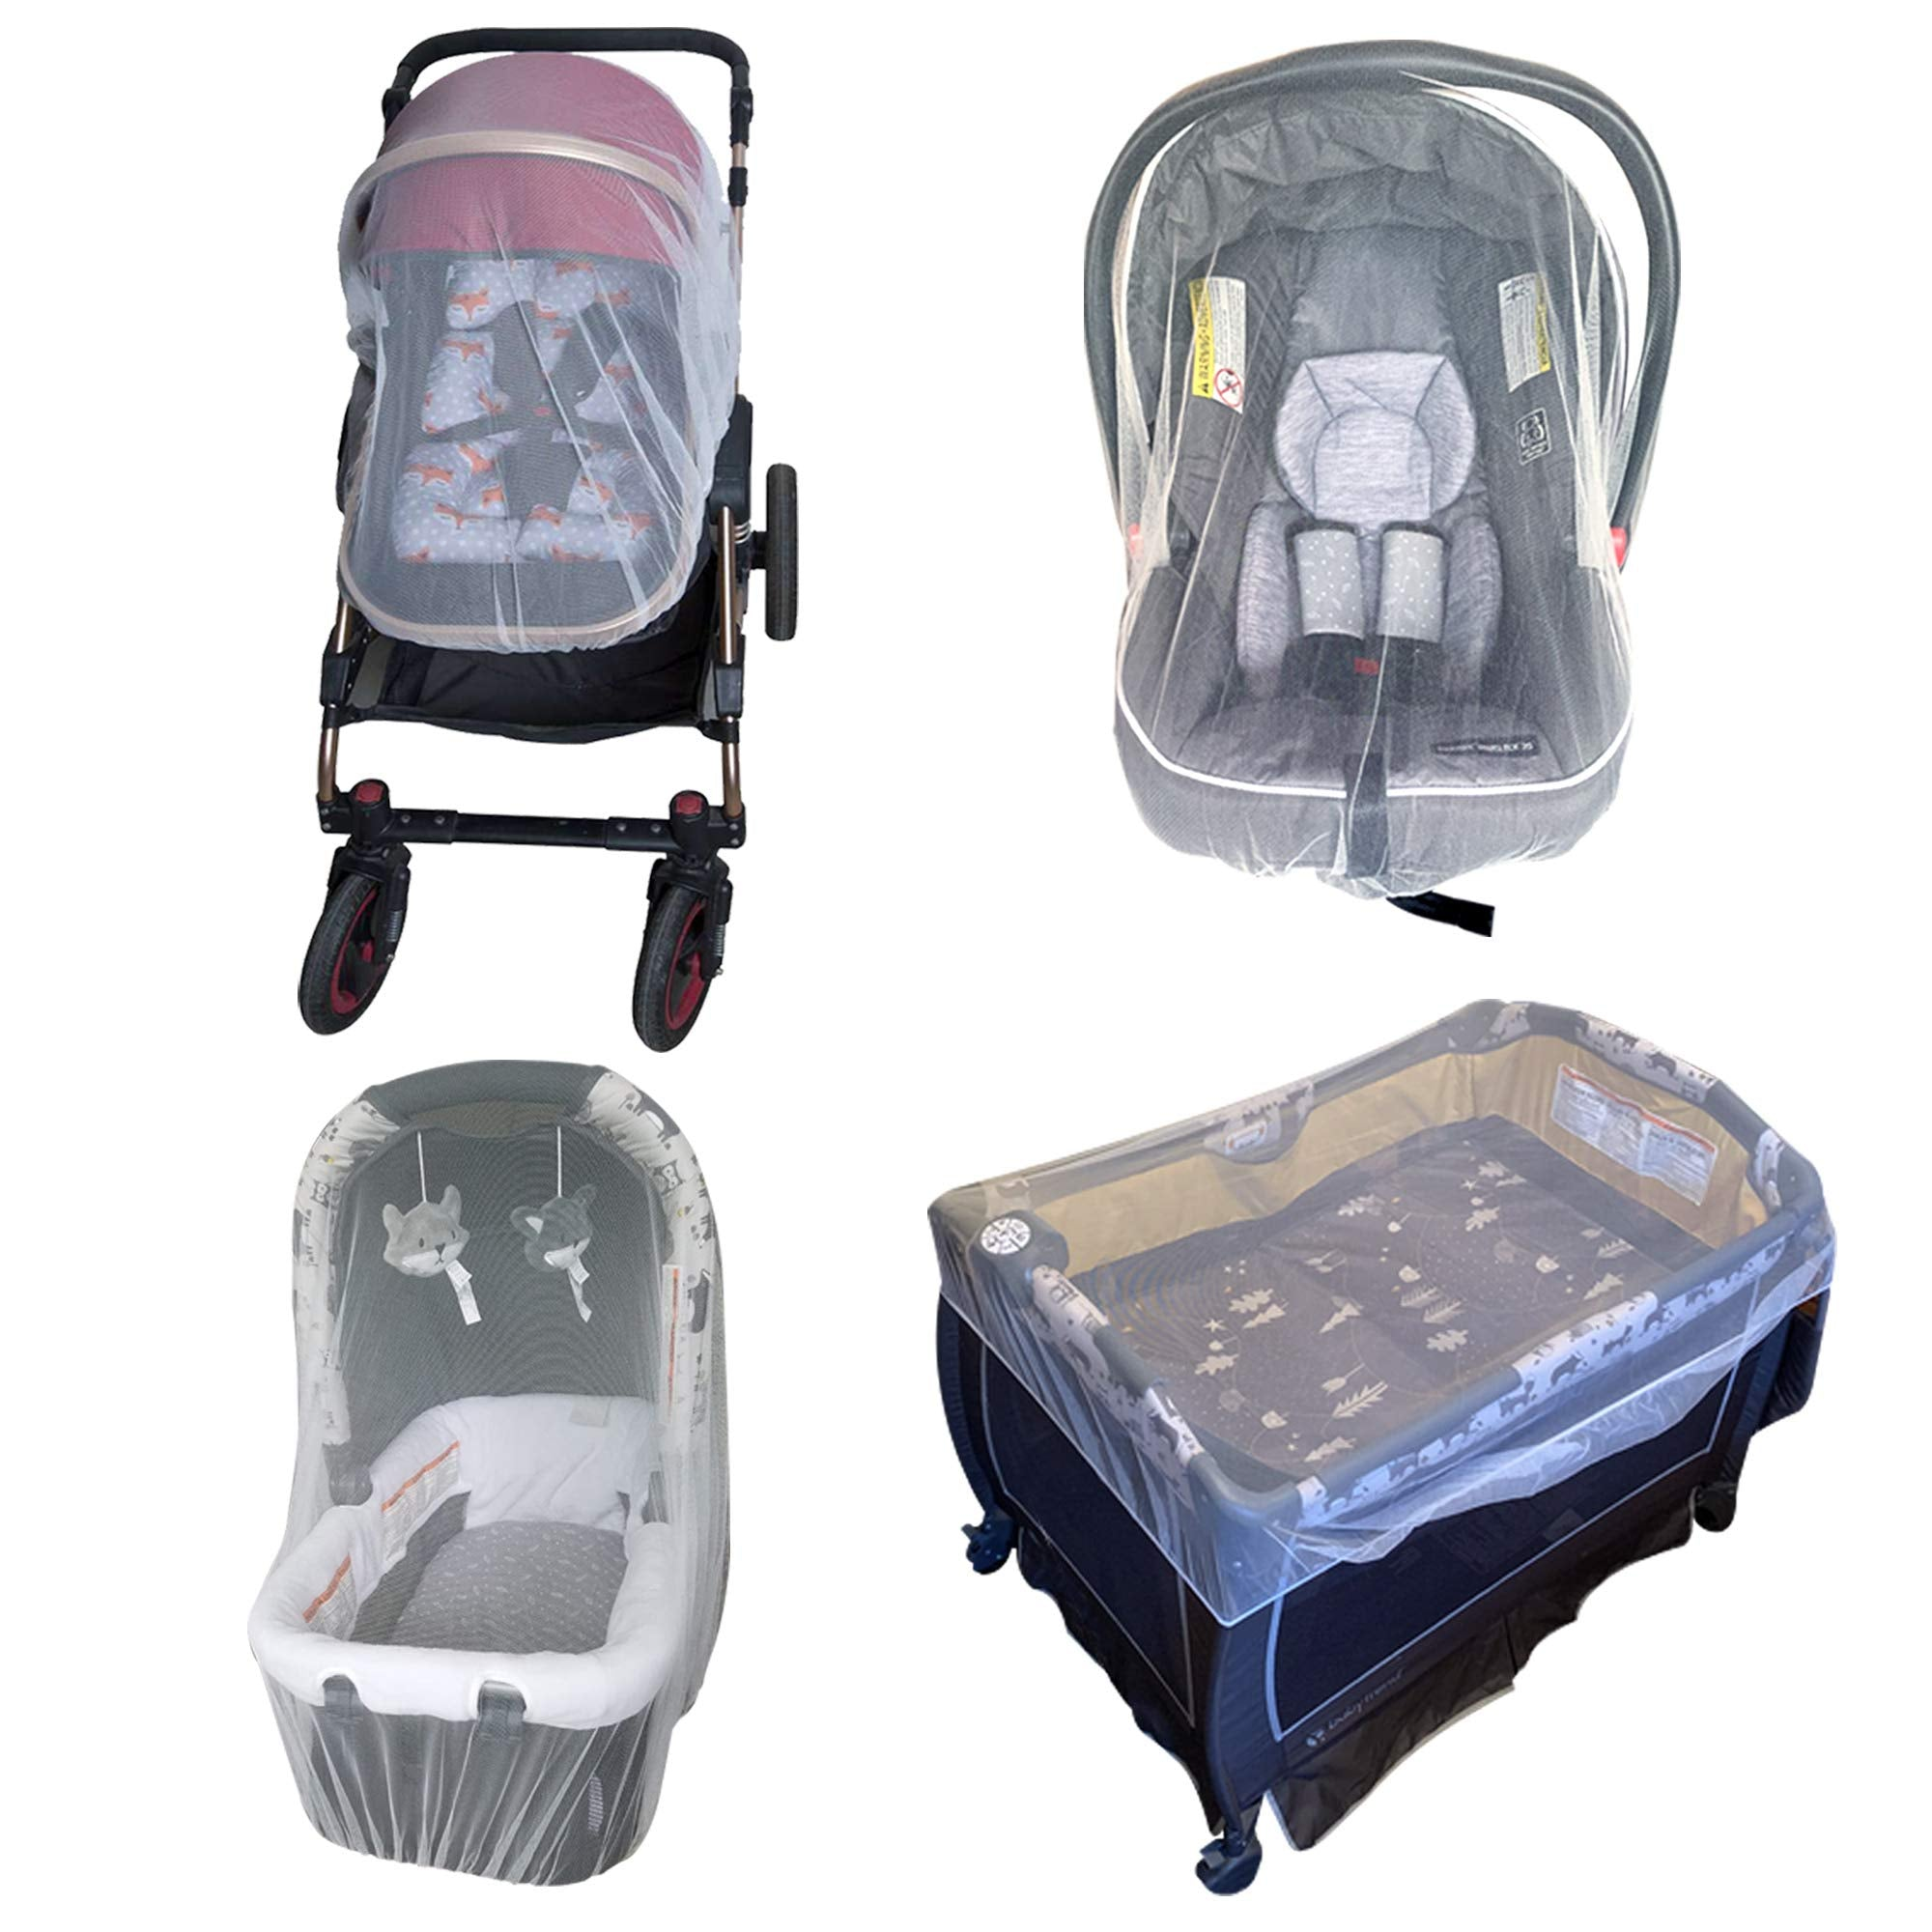 Universal Durable Mosquito Net For Strollers, Cradles, And Cribs